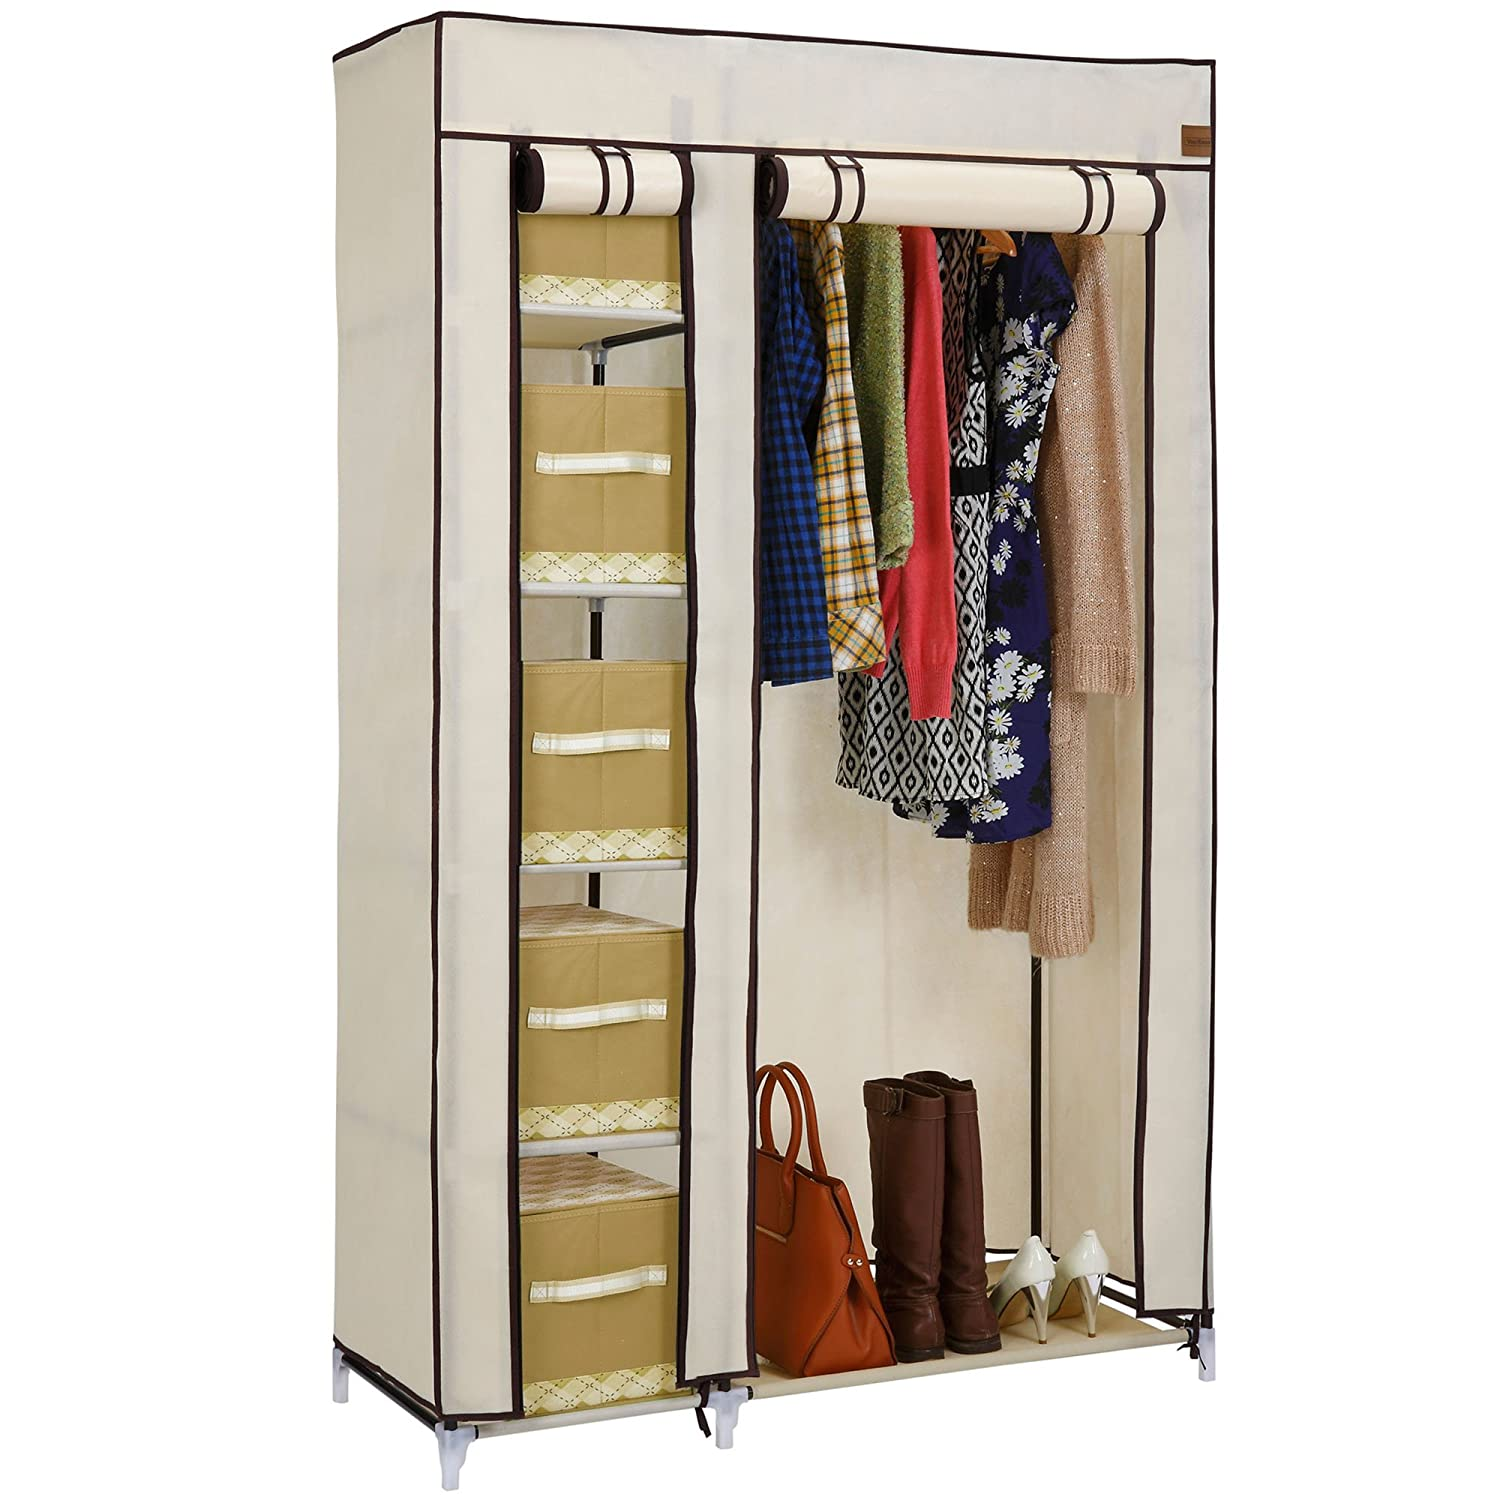 Bedroom furniture wardrobes - Vonhaus Double Canvas Effect Wardrobe Clothes Cupboard Hanging Rail Storage 6 Shelves Beige W110 X D45 X H175cm